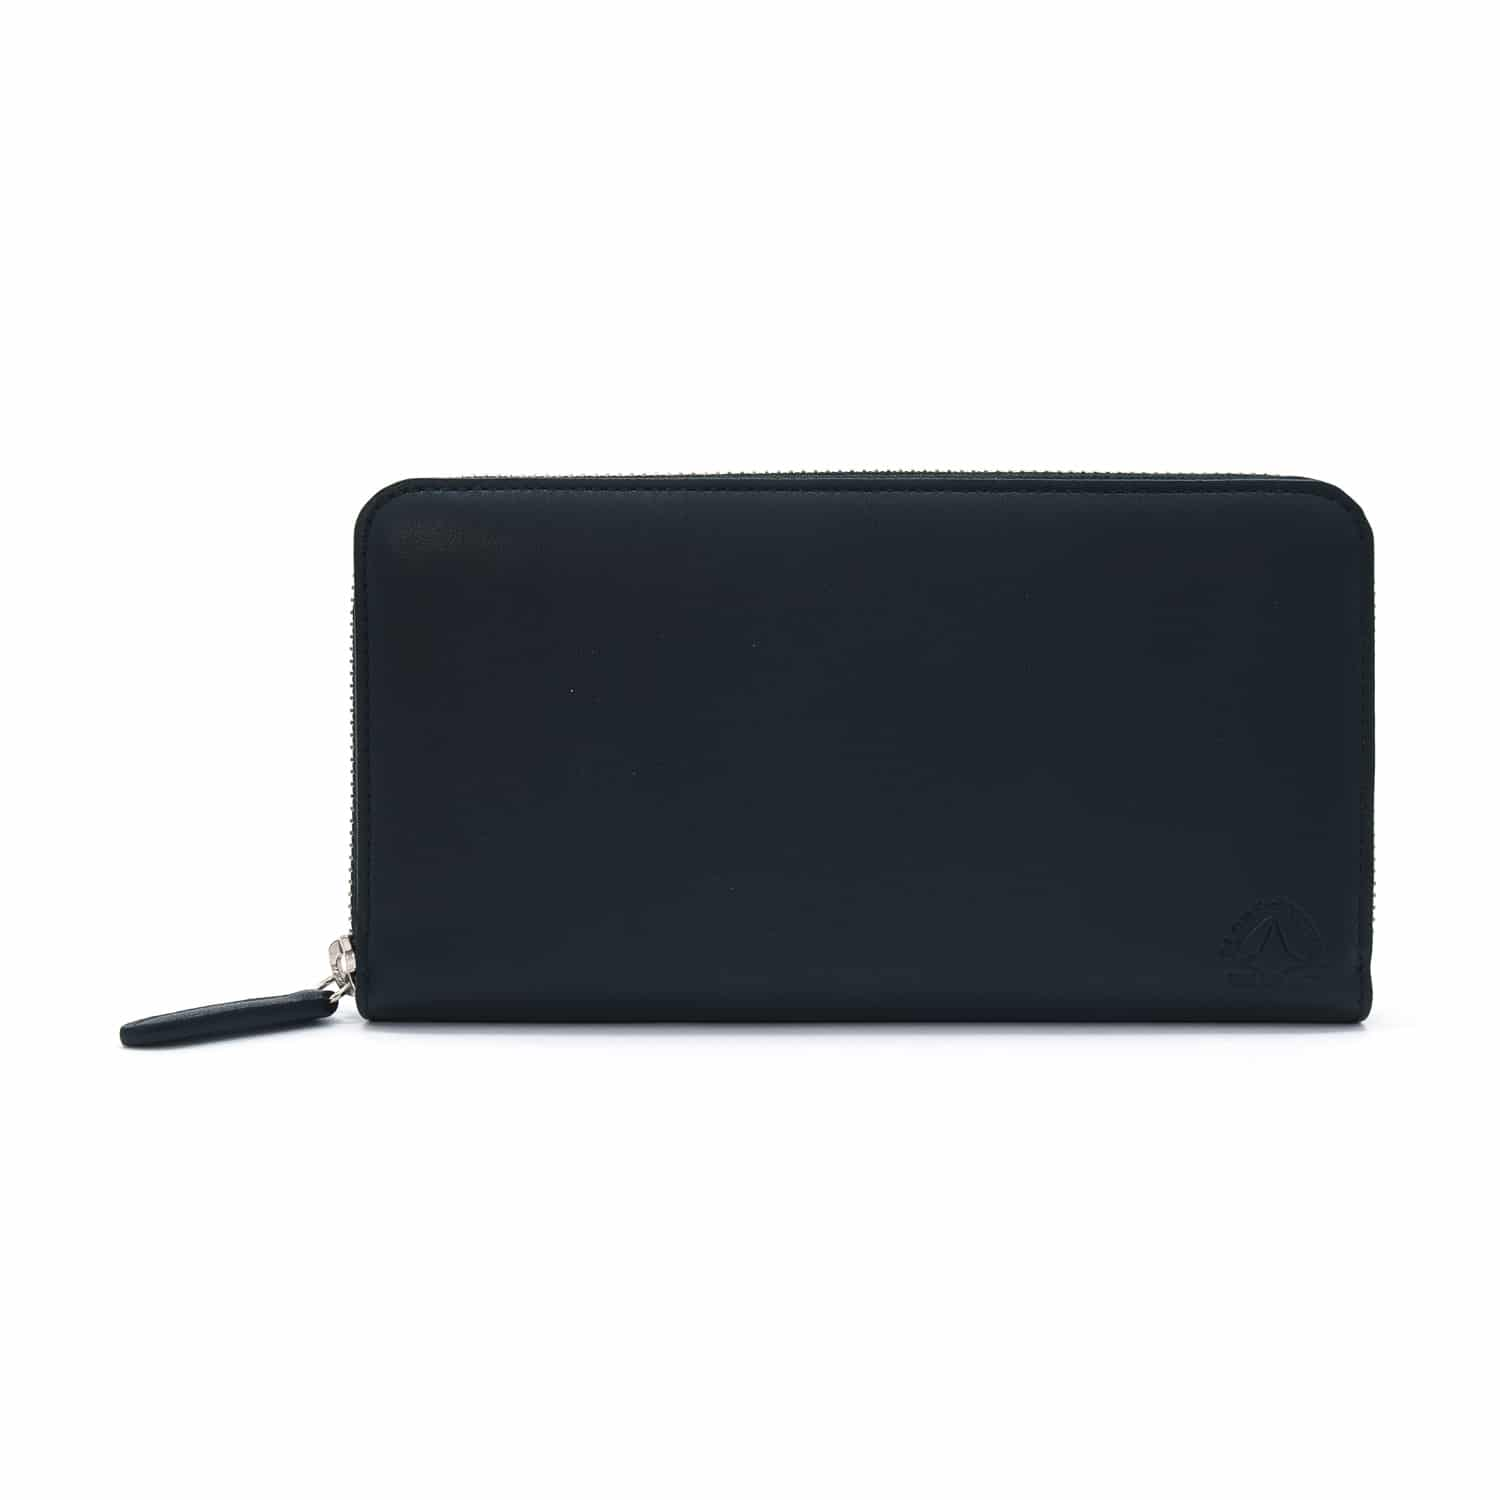 Centenary Leather · Large Zip Around Purse - Black